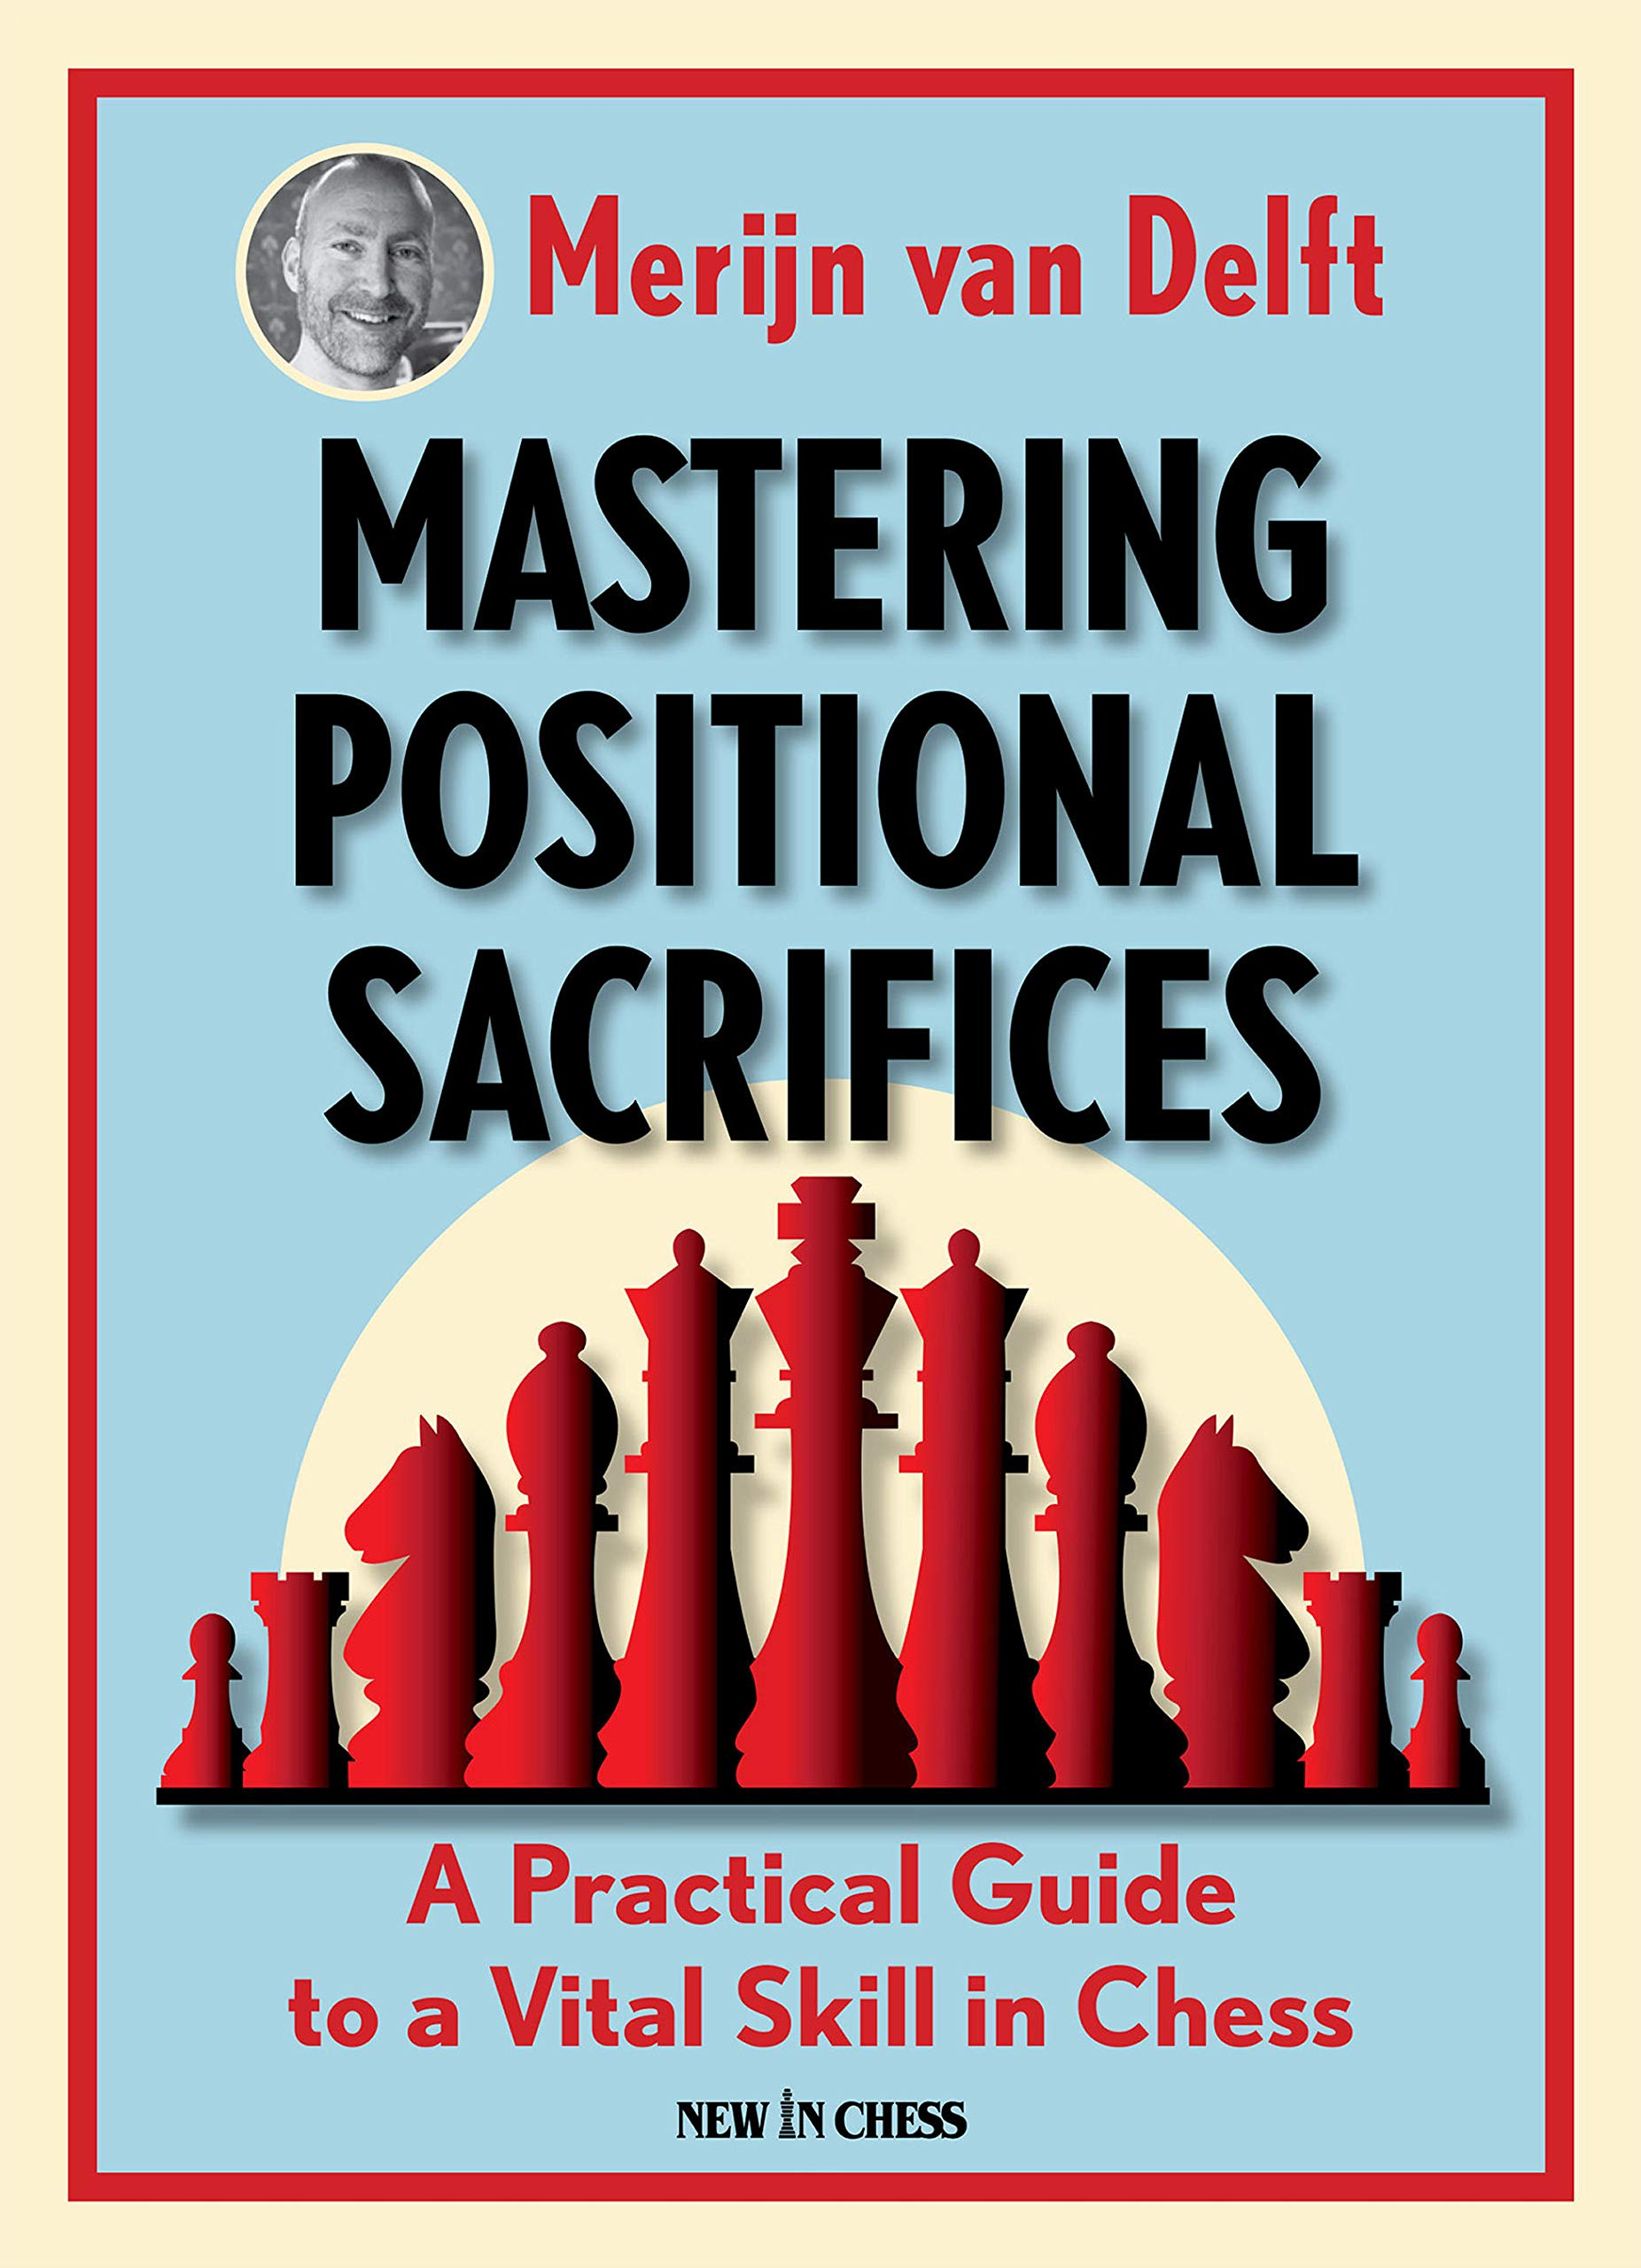 Mastering Positional Sacrifices: A Practical Guide to a Vital Skill in Chess.New In Chess, August 2020, Merijn van Delft